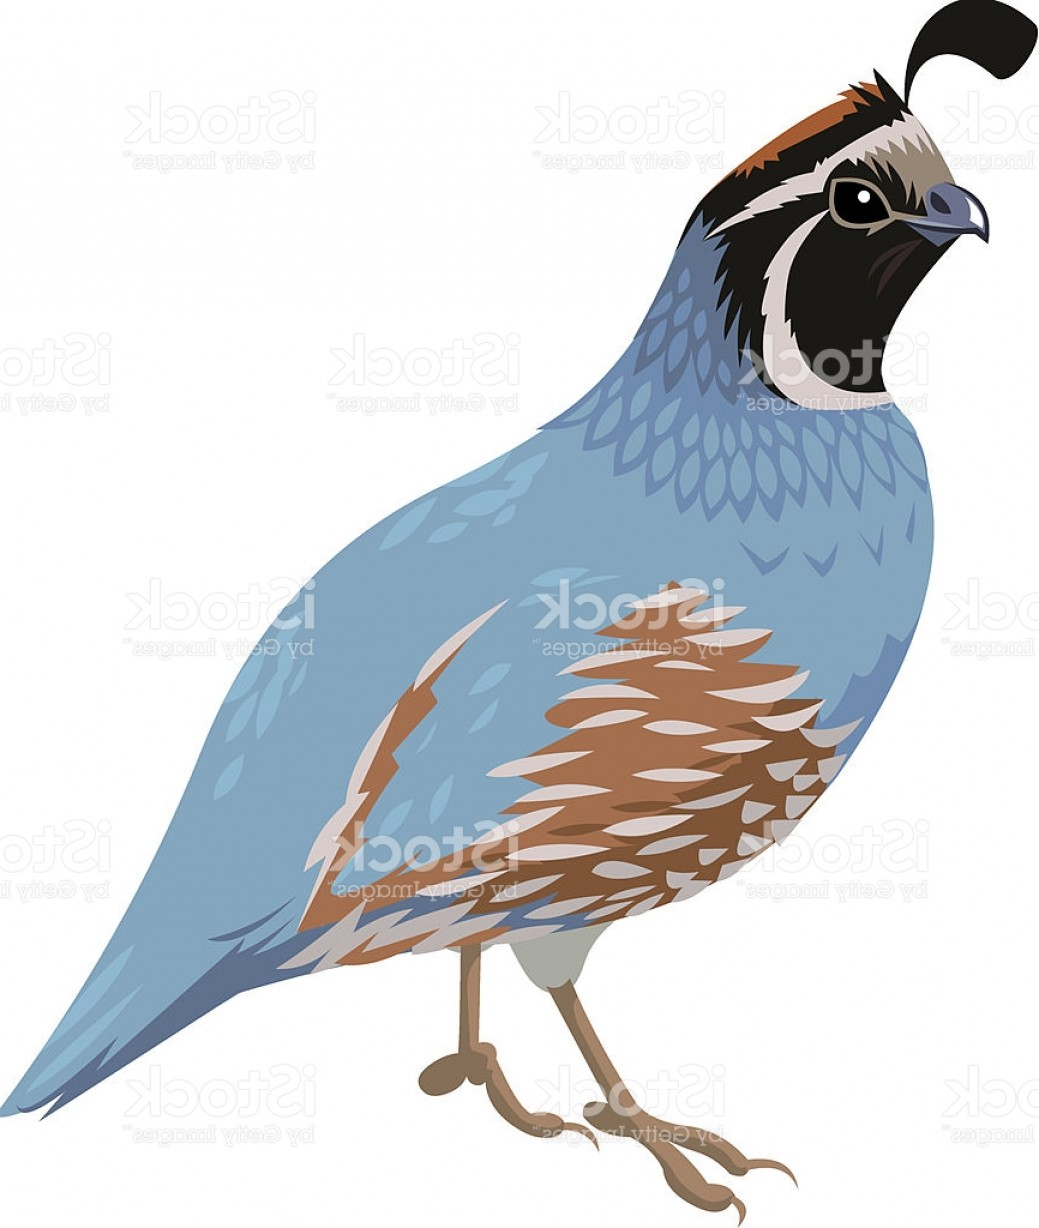 Quail Vector Art: A Blue And Brown Cartoon Of A Quail Bird Gm